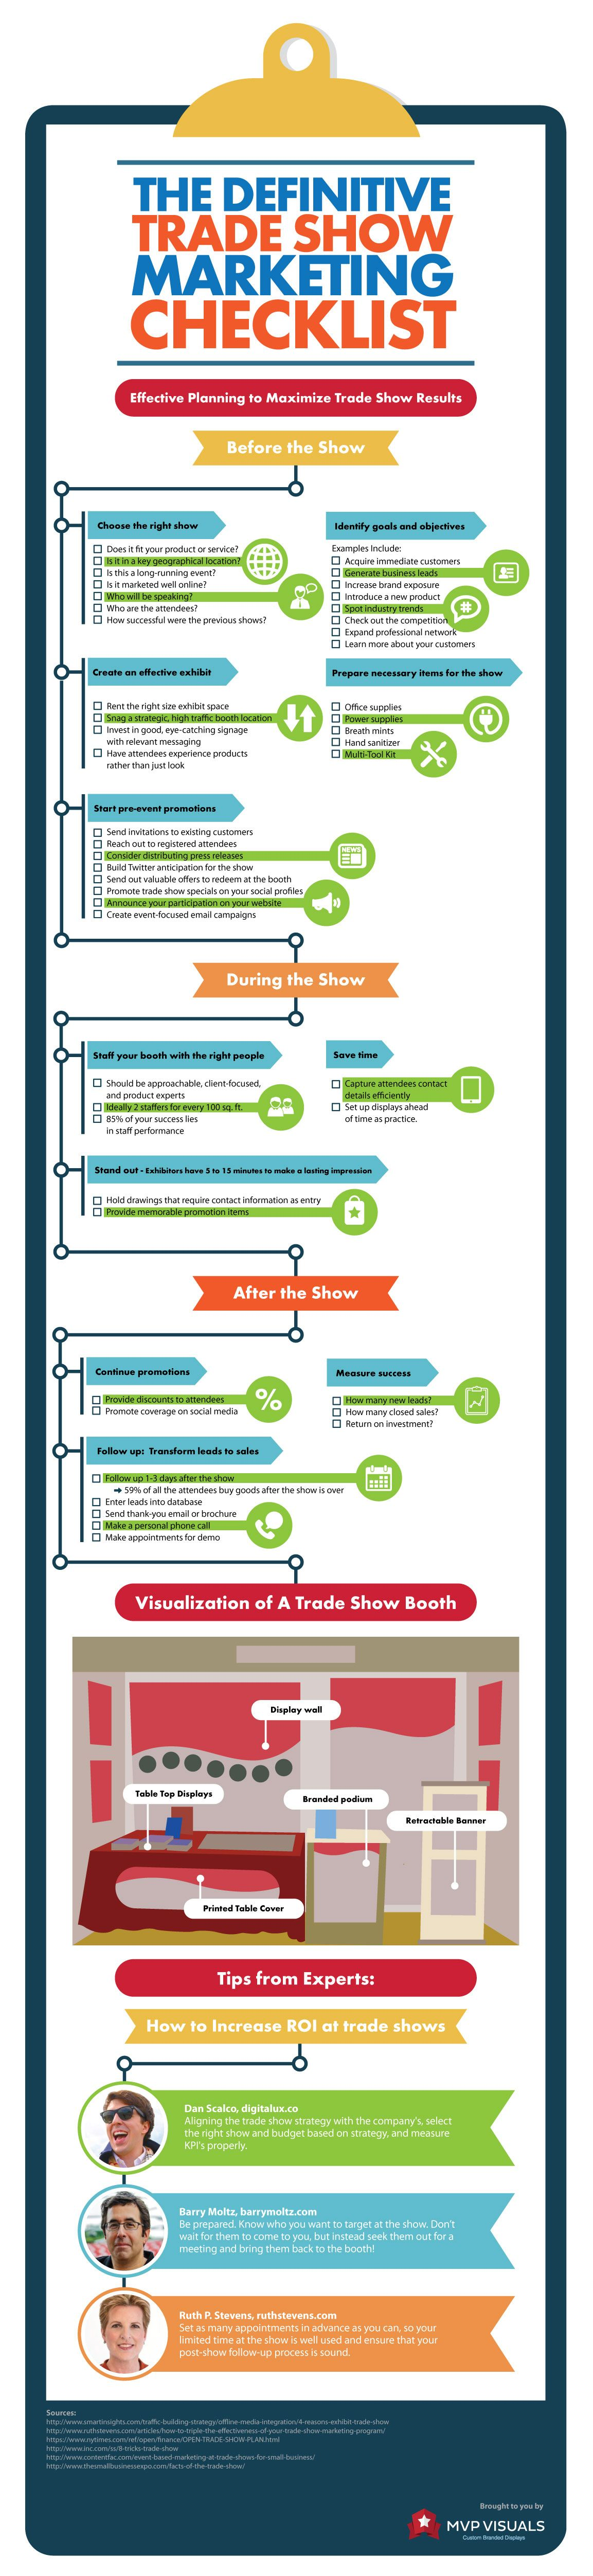 The Definitive Trade Show Marketing Checklist #Infographic